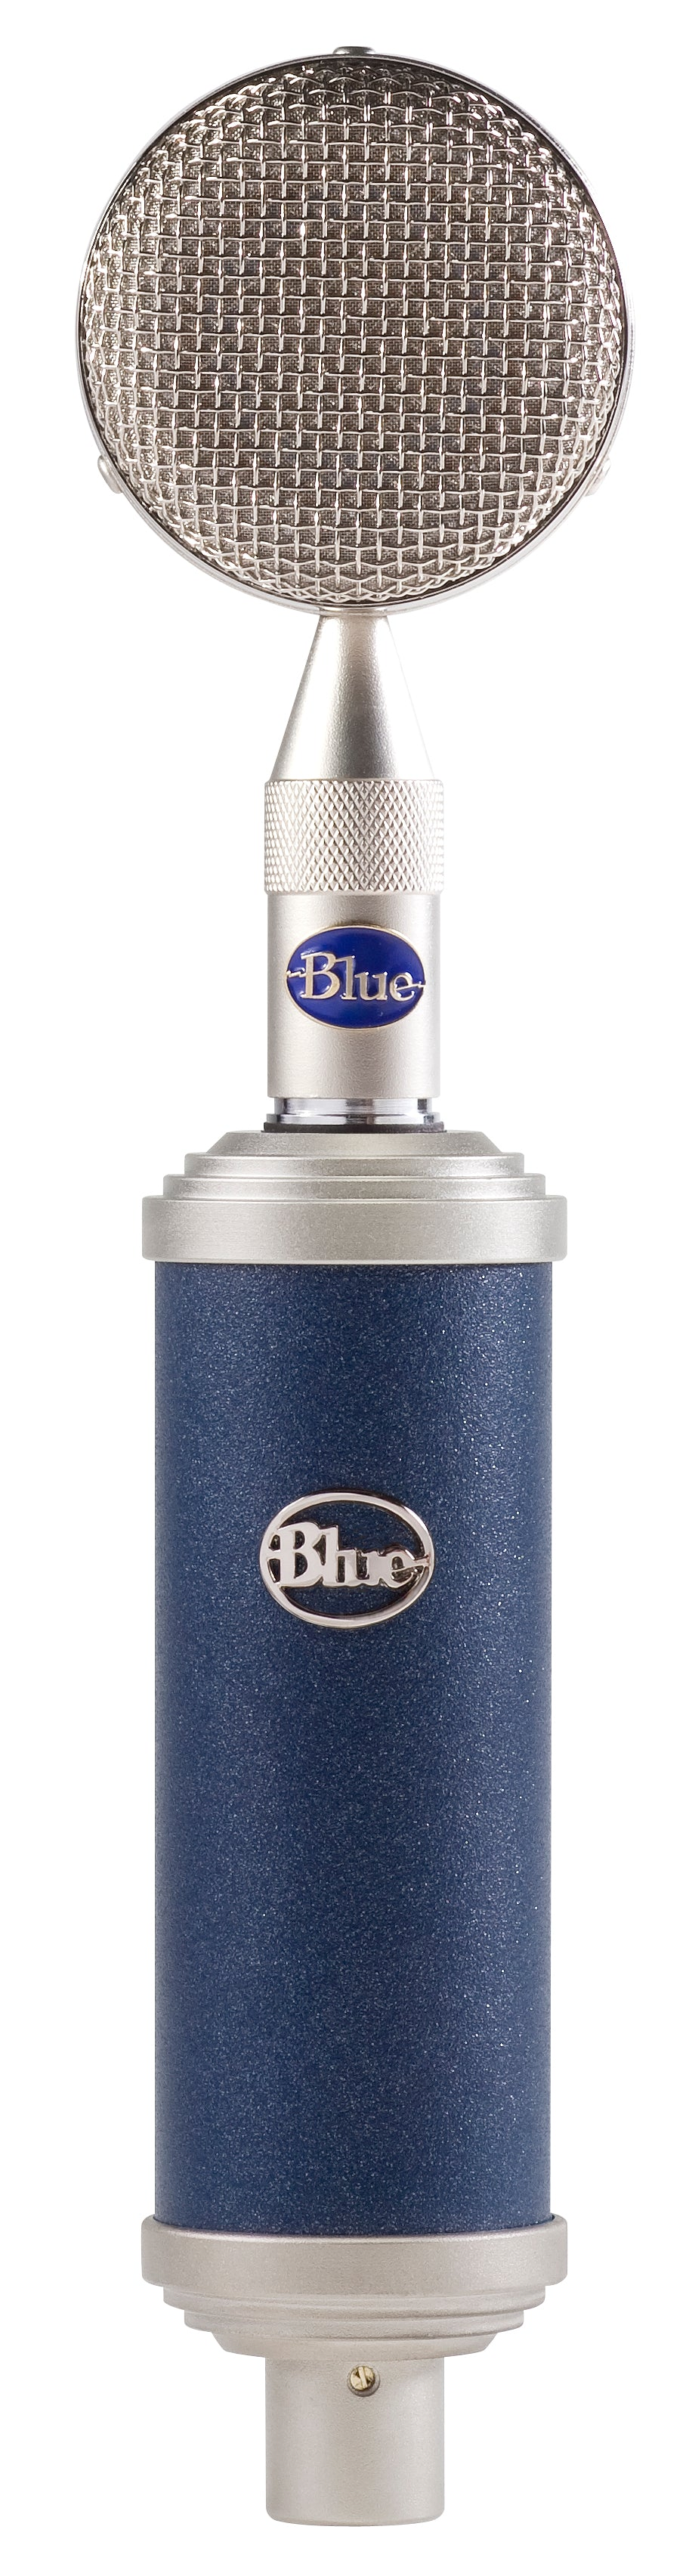 Blue Microphones Bottle Rocket Stage 1 Condenser Microphone With Interchangeable Capsules